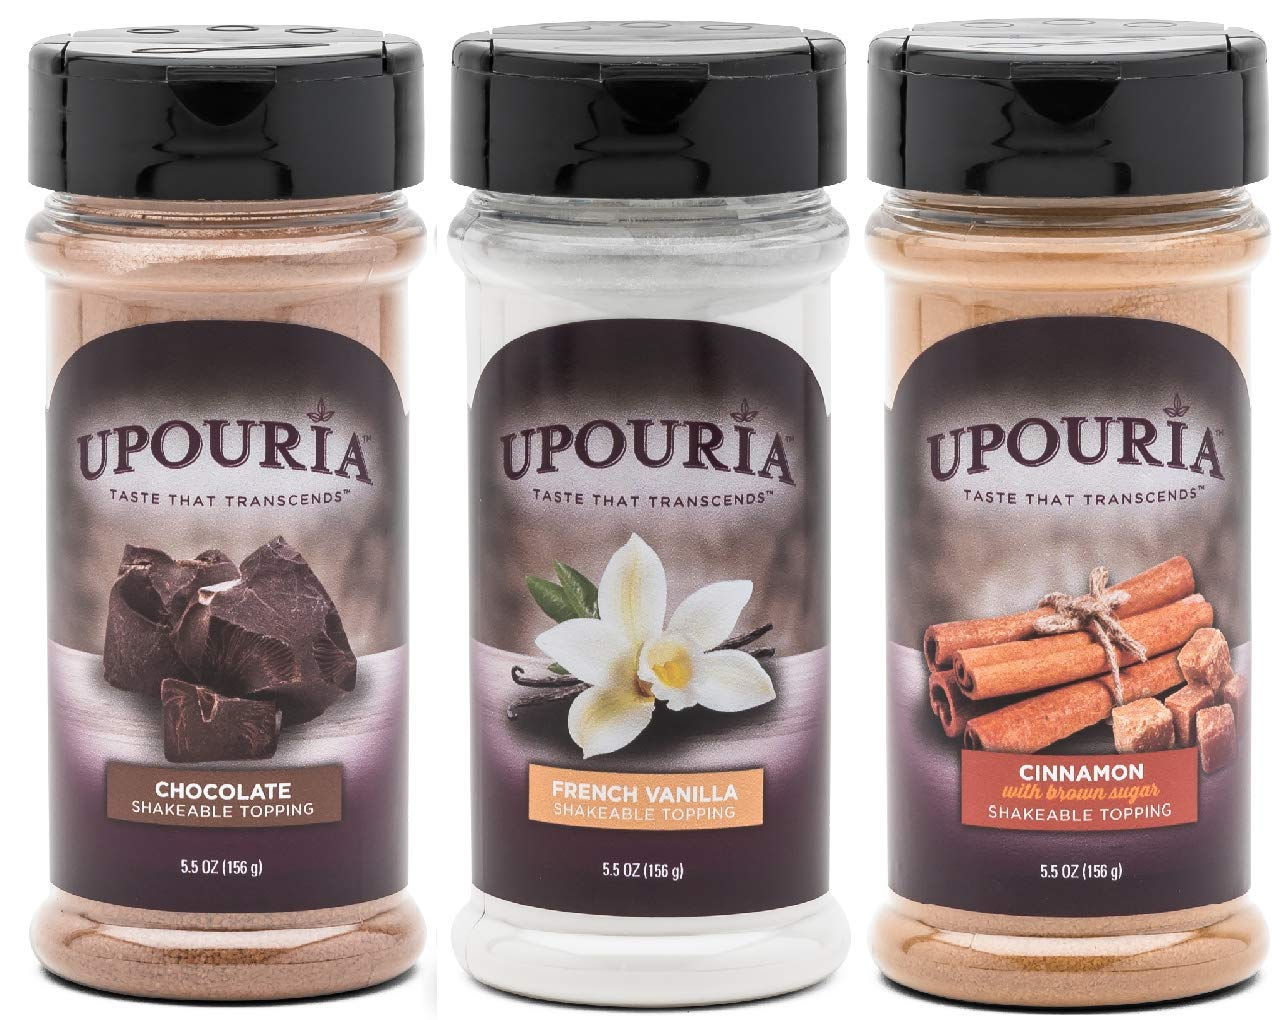 Upouria Coffee Topping Variety Pack - Chocolate, Cinnamon with Brown Sugar, and French Vanilla, 5.5 Ounce Shakeable Topping Jars - (Pack of 3)